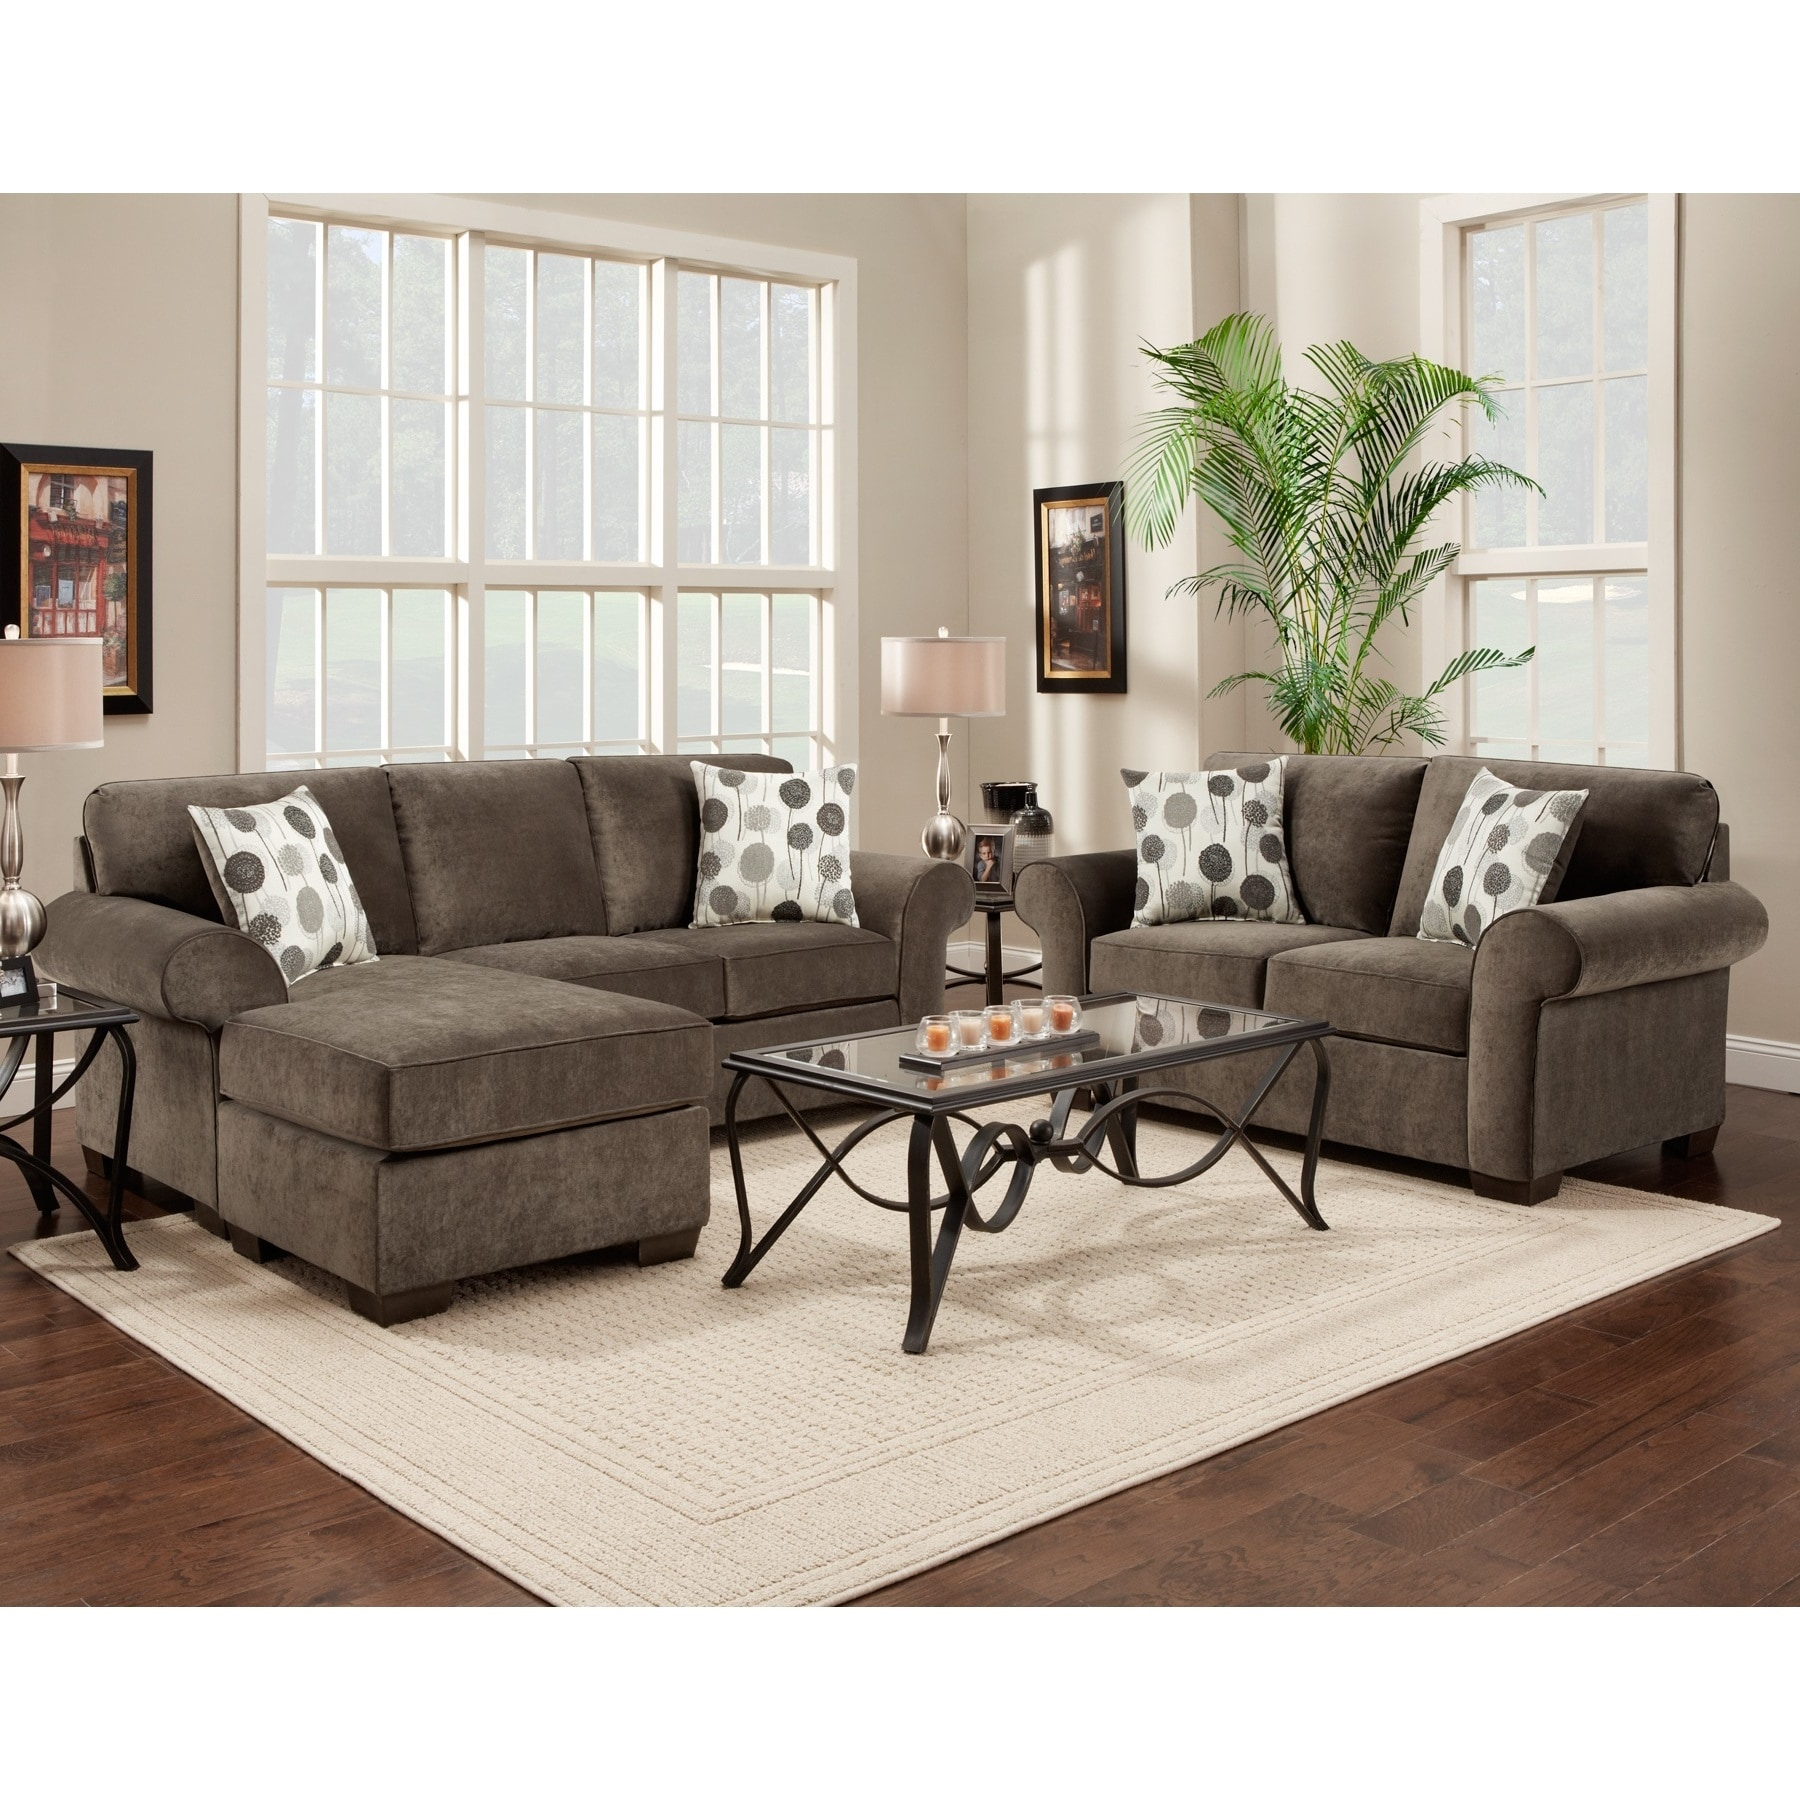 Sectional Loveseat – Tidex In Famous Turdur 3 Piece Sectionals With Laf Loveseat (View 12 of 20)